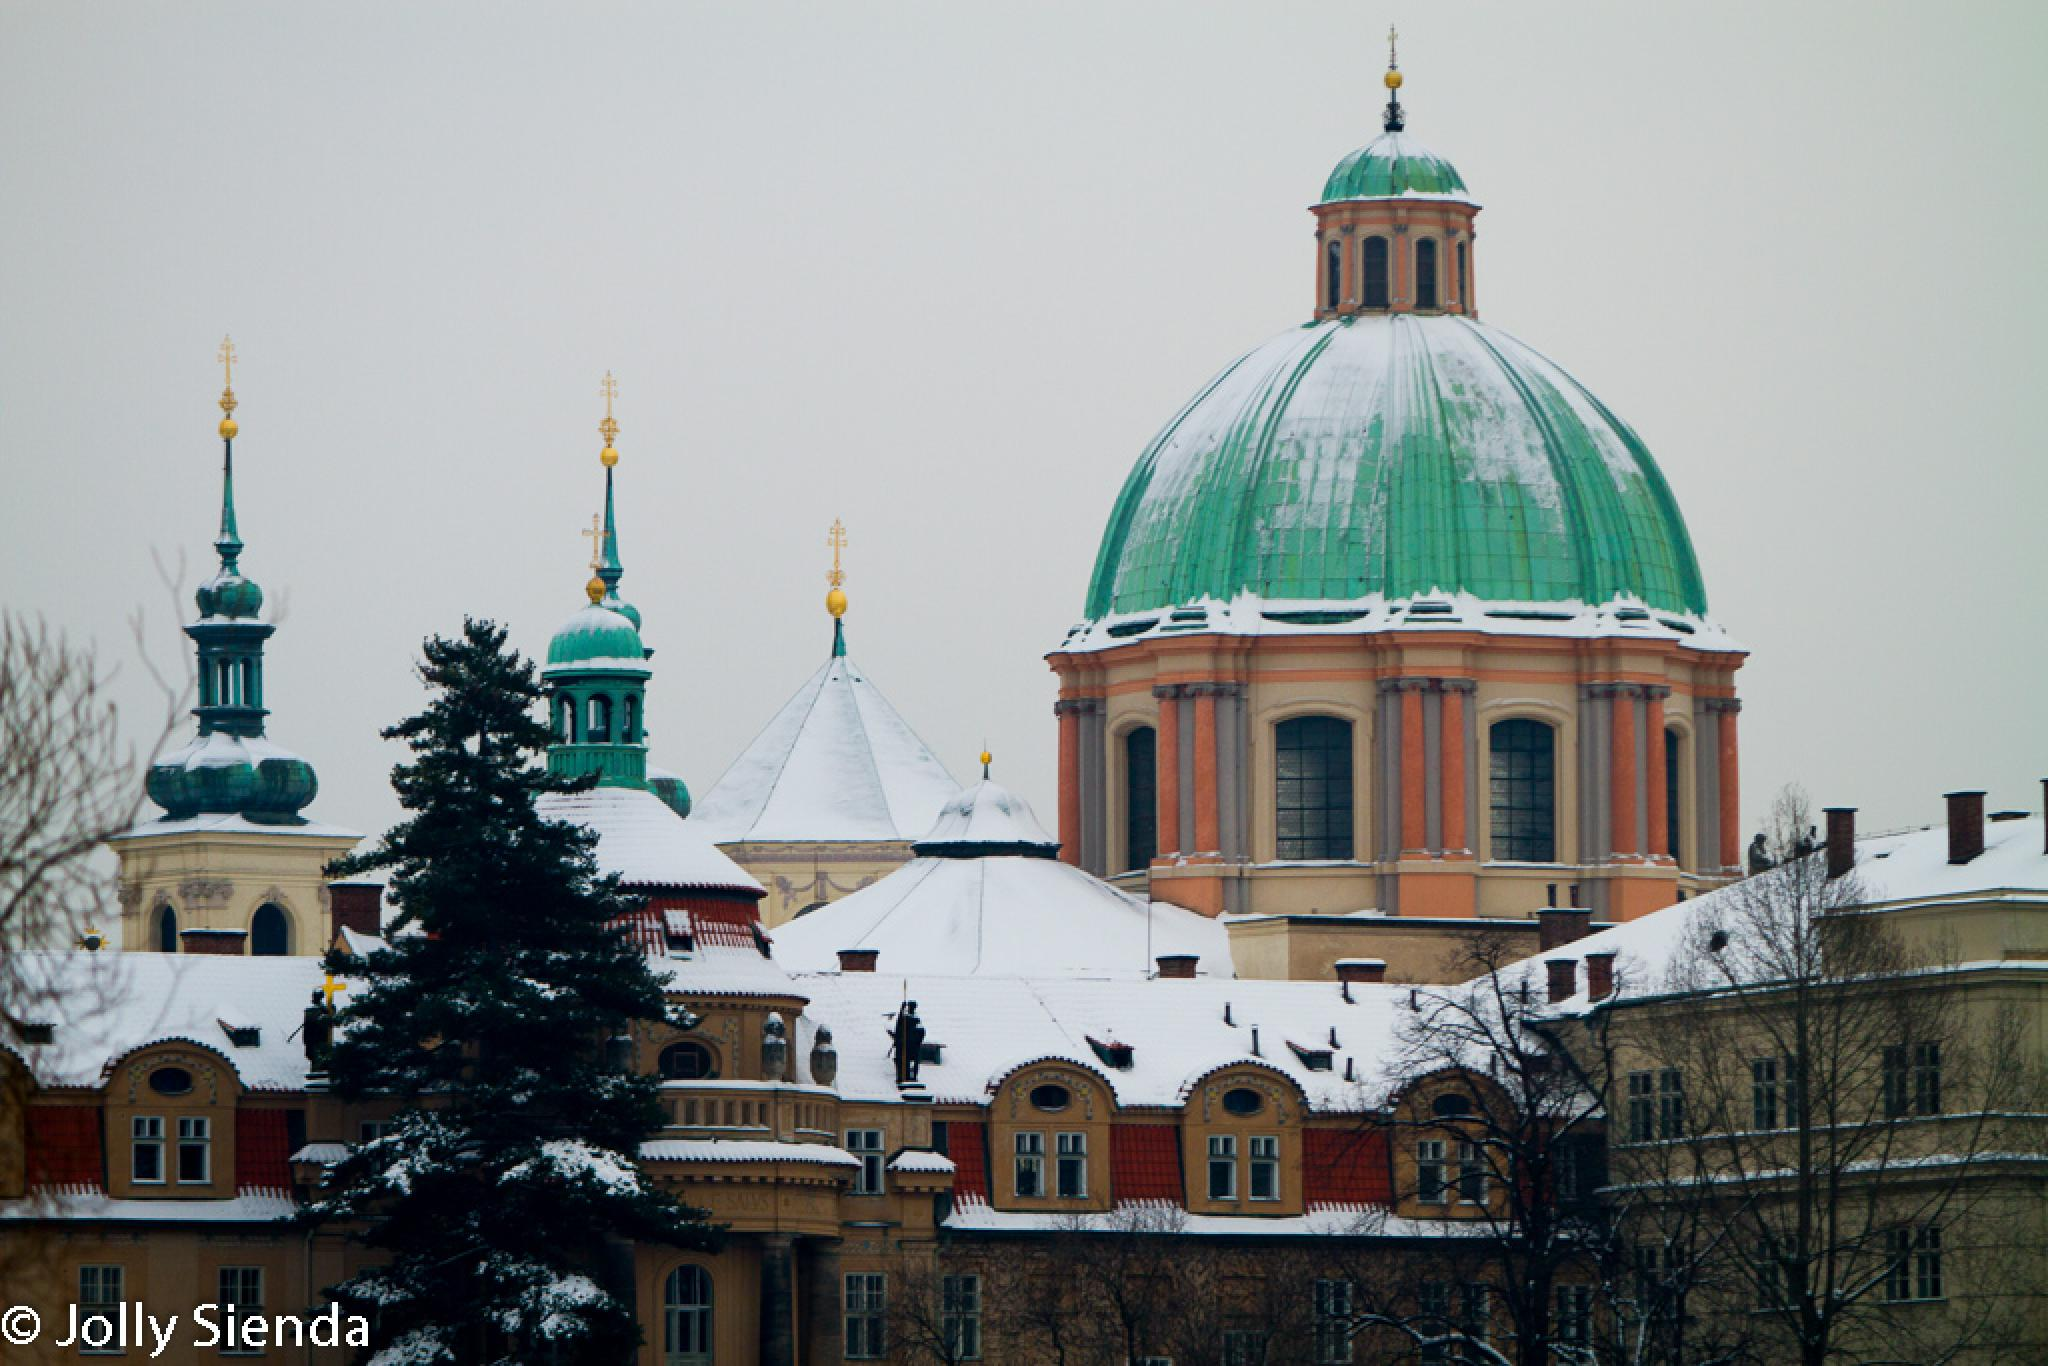 Prague in the winter and the cities Baroque architecture by Jolly Sienda